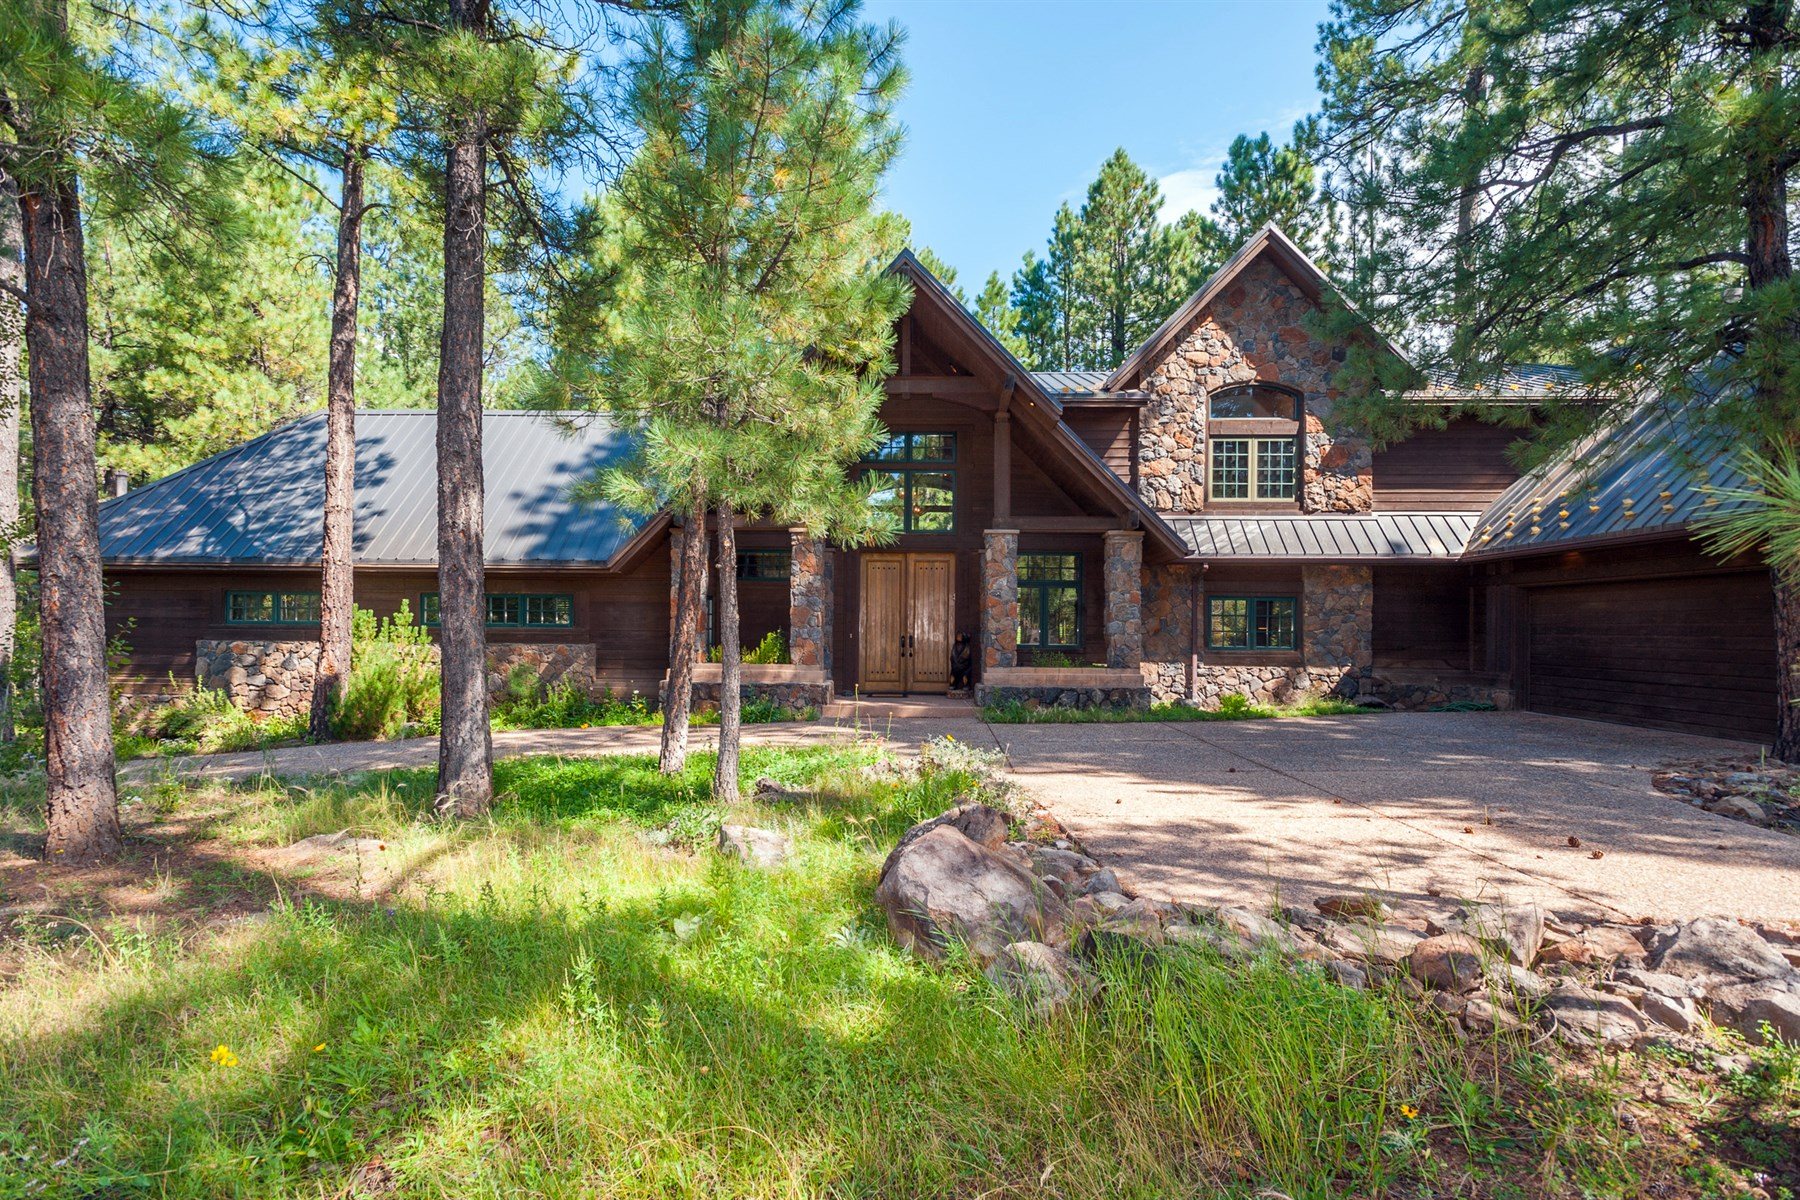 Single Family Home for Sale at magnificent Sandelin designed retreat is perfectly situated among the tall pines 2764 Bear Howard -- Flagstaff, Arizona 86005 United States